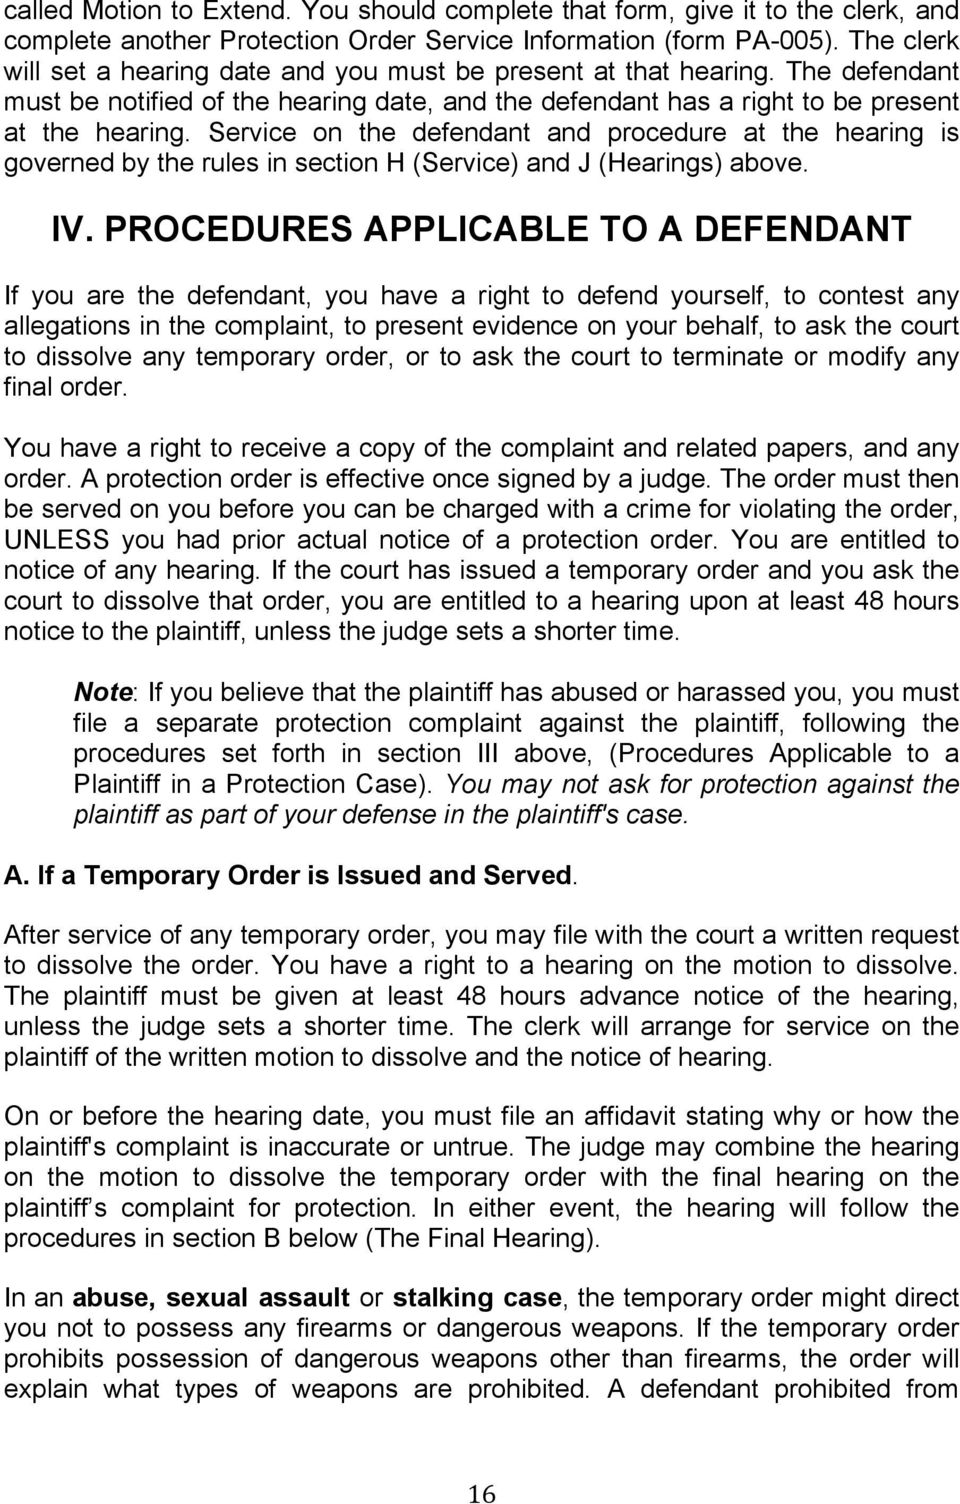 Service on the defendant and procedure at the hearing is governed by the rules in section H (Service) and J (Hearings) above. IV.